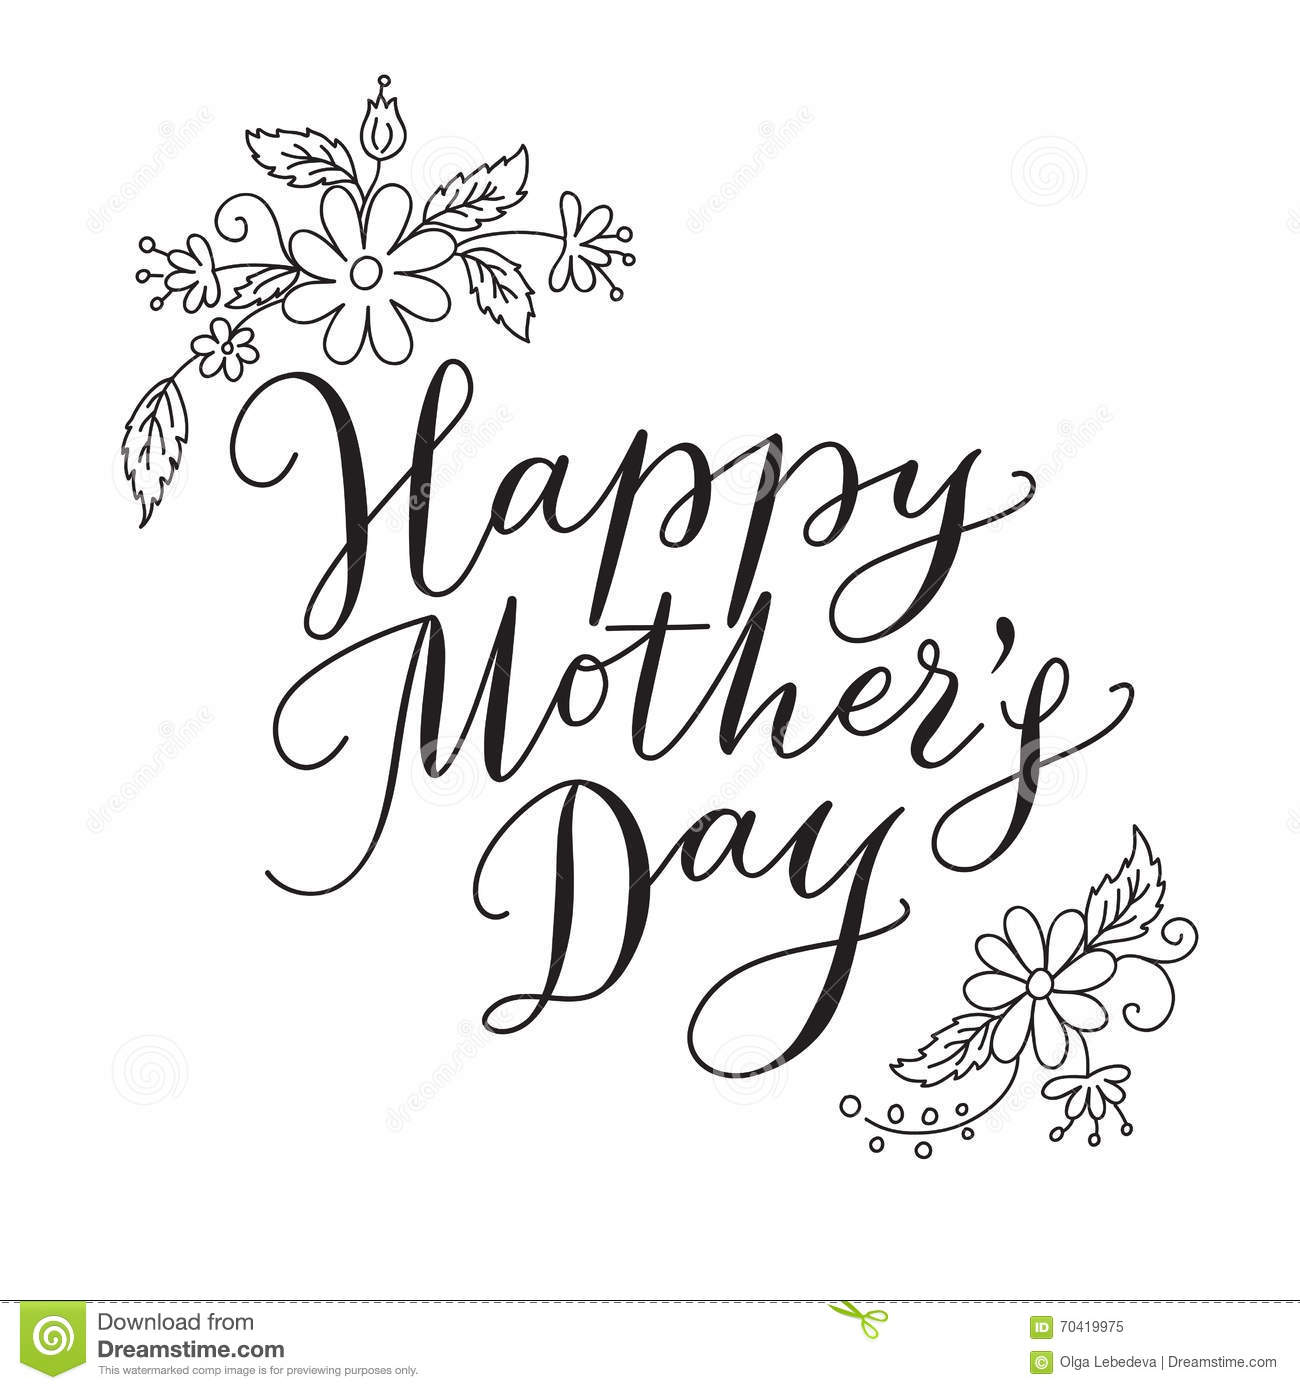 Happy Mothers Day Card With Hand Drawn Text And Flowers